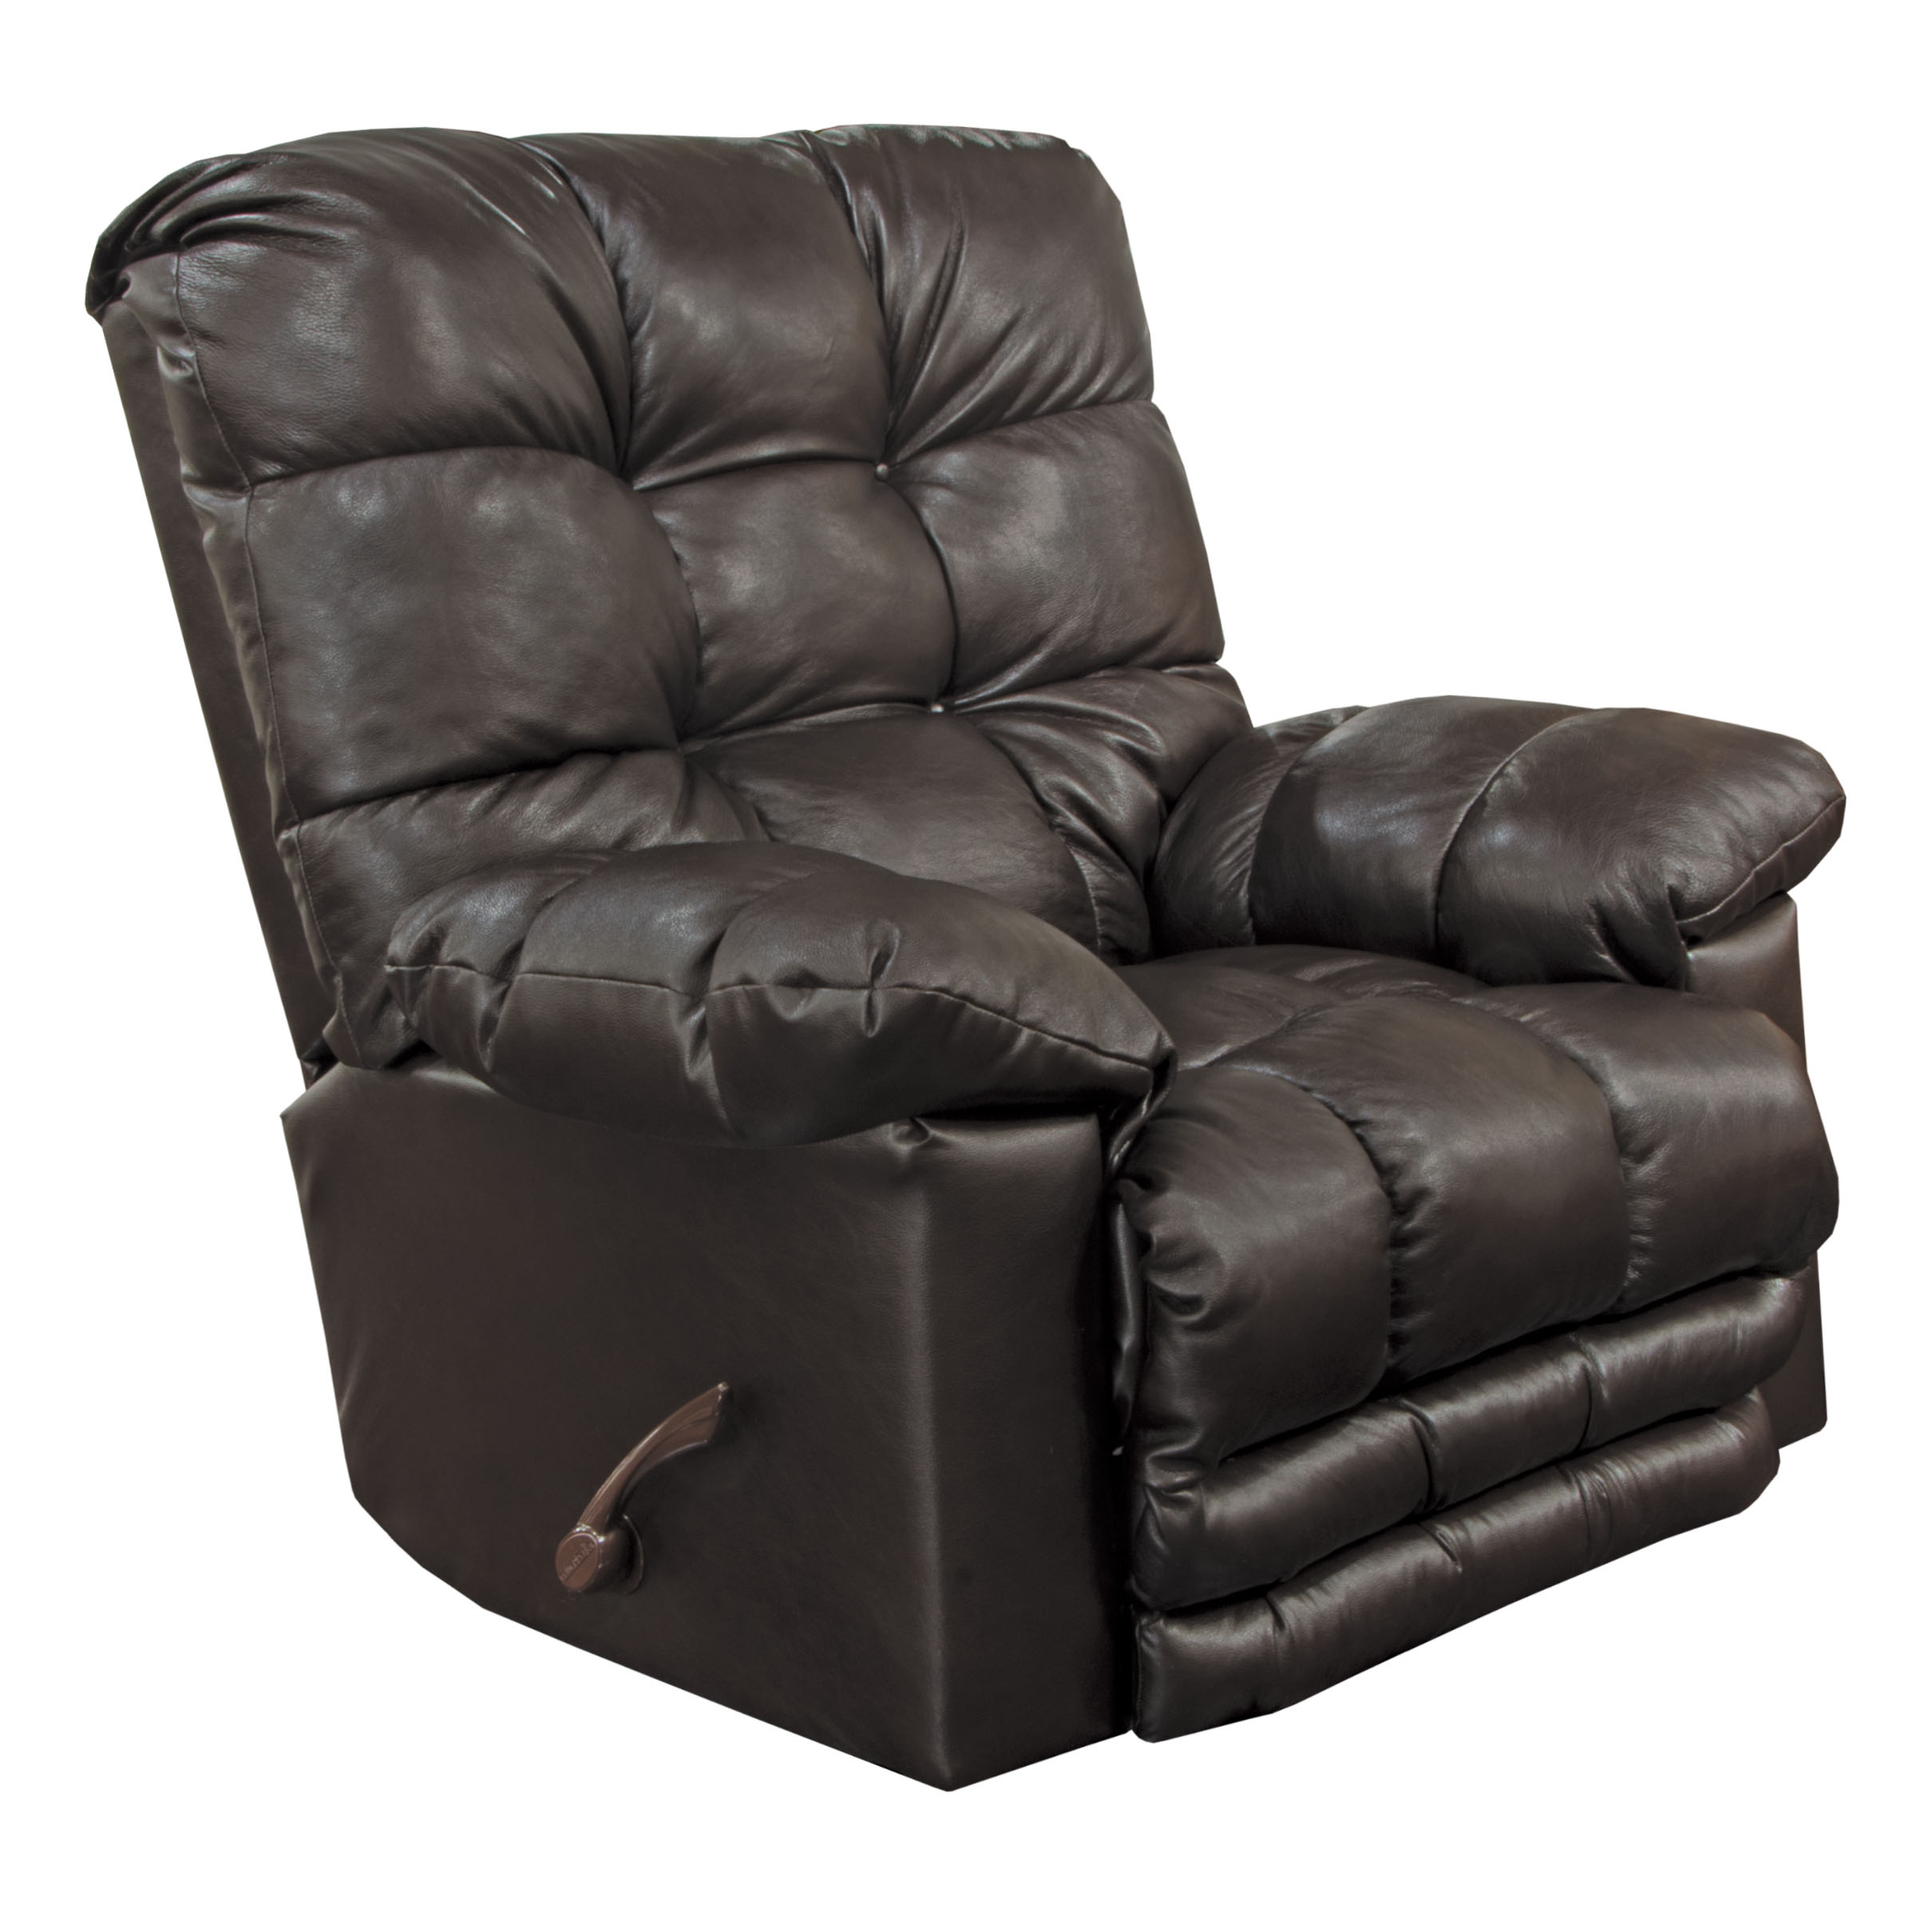 Catnapper Piazza Top Grain Leather Touch Rocker Recliner with X-tra Comfort Footrest in Chocolate